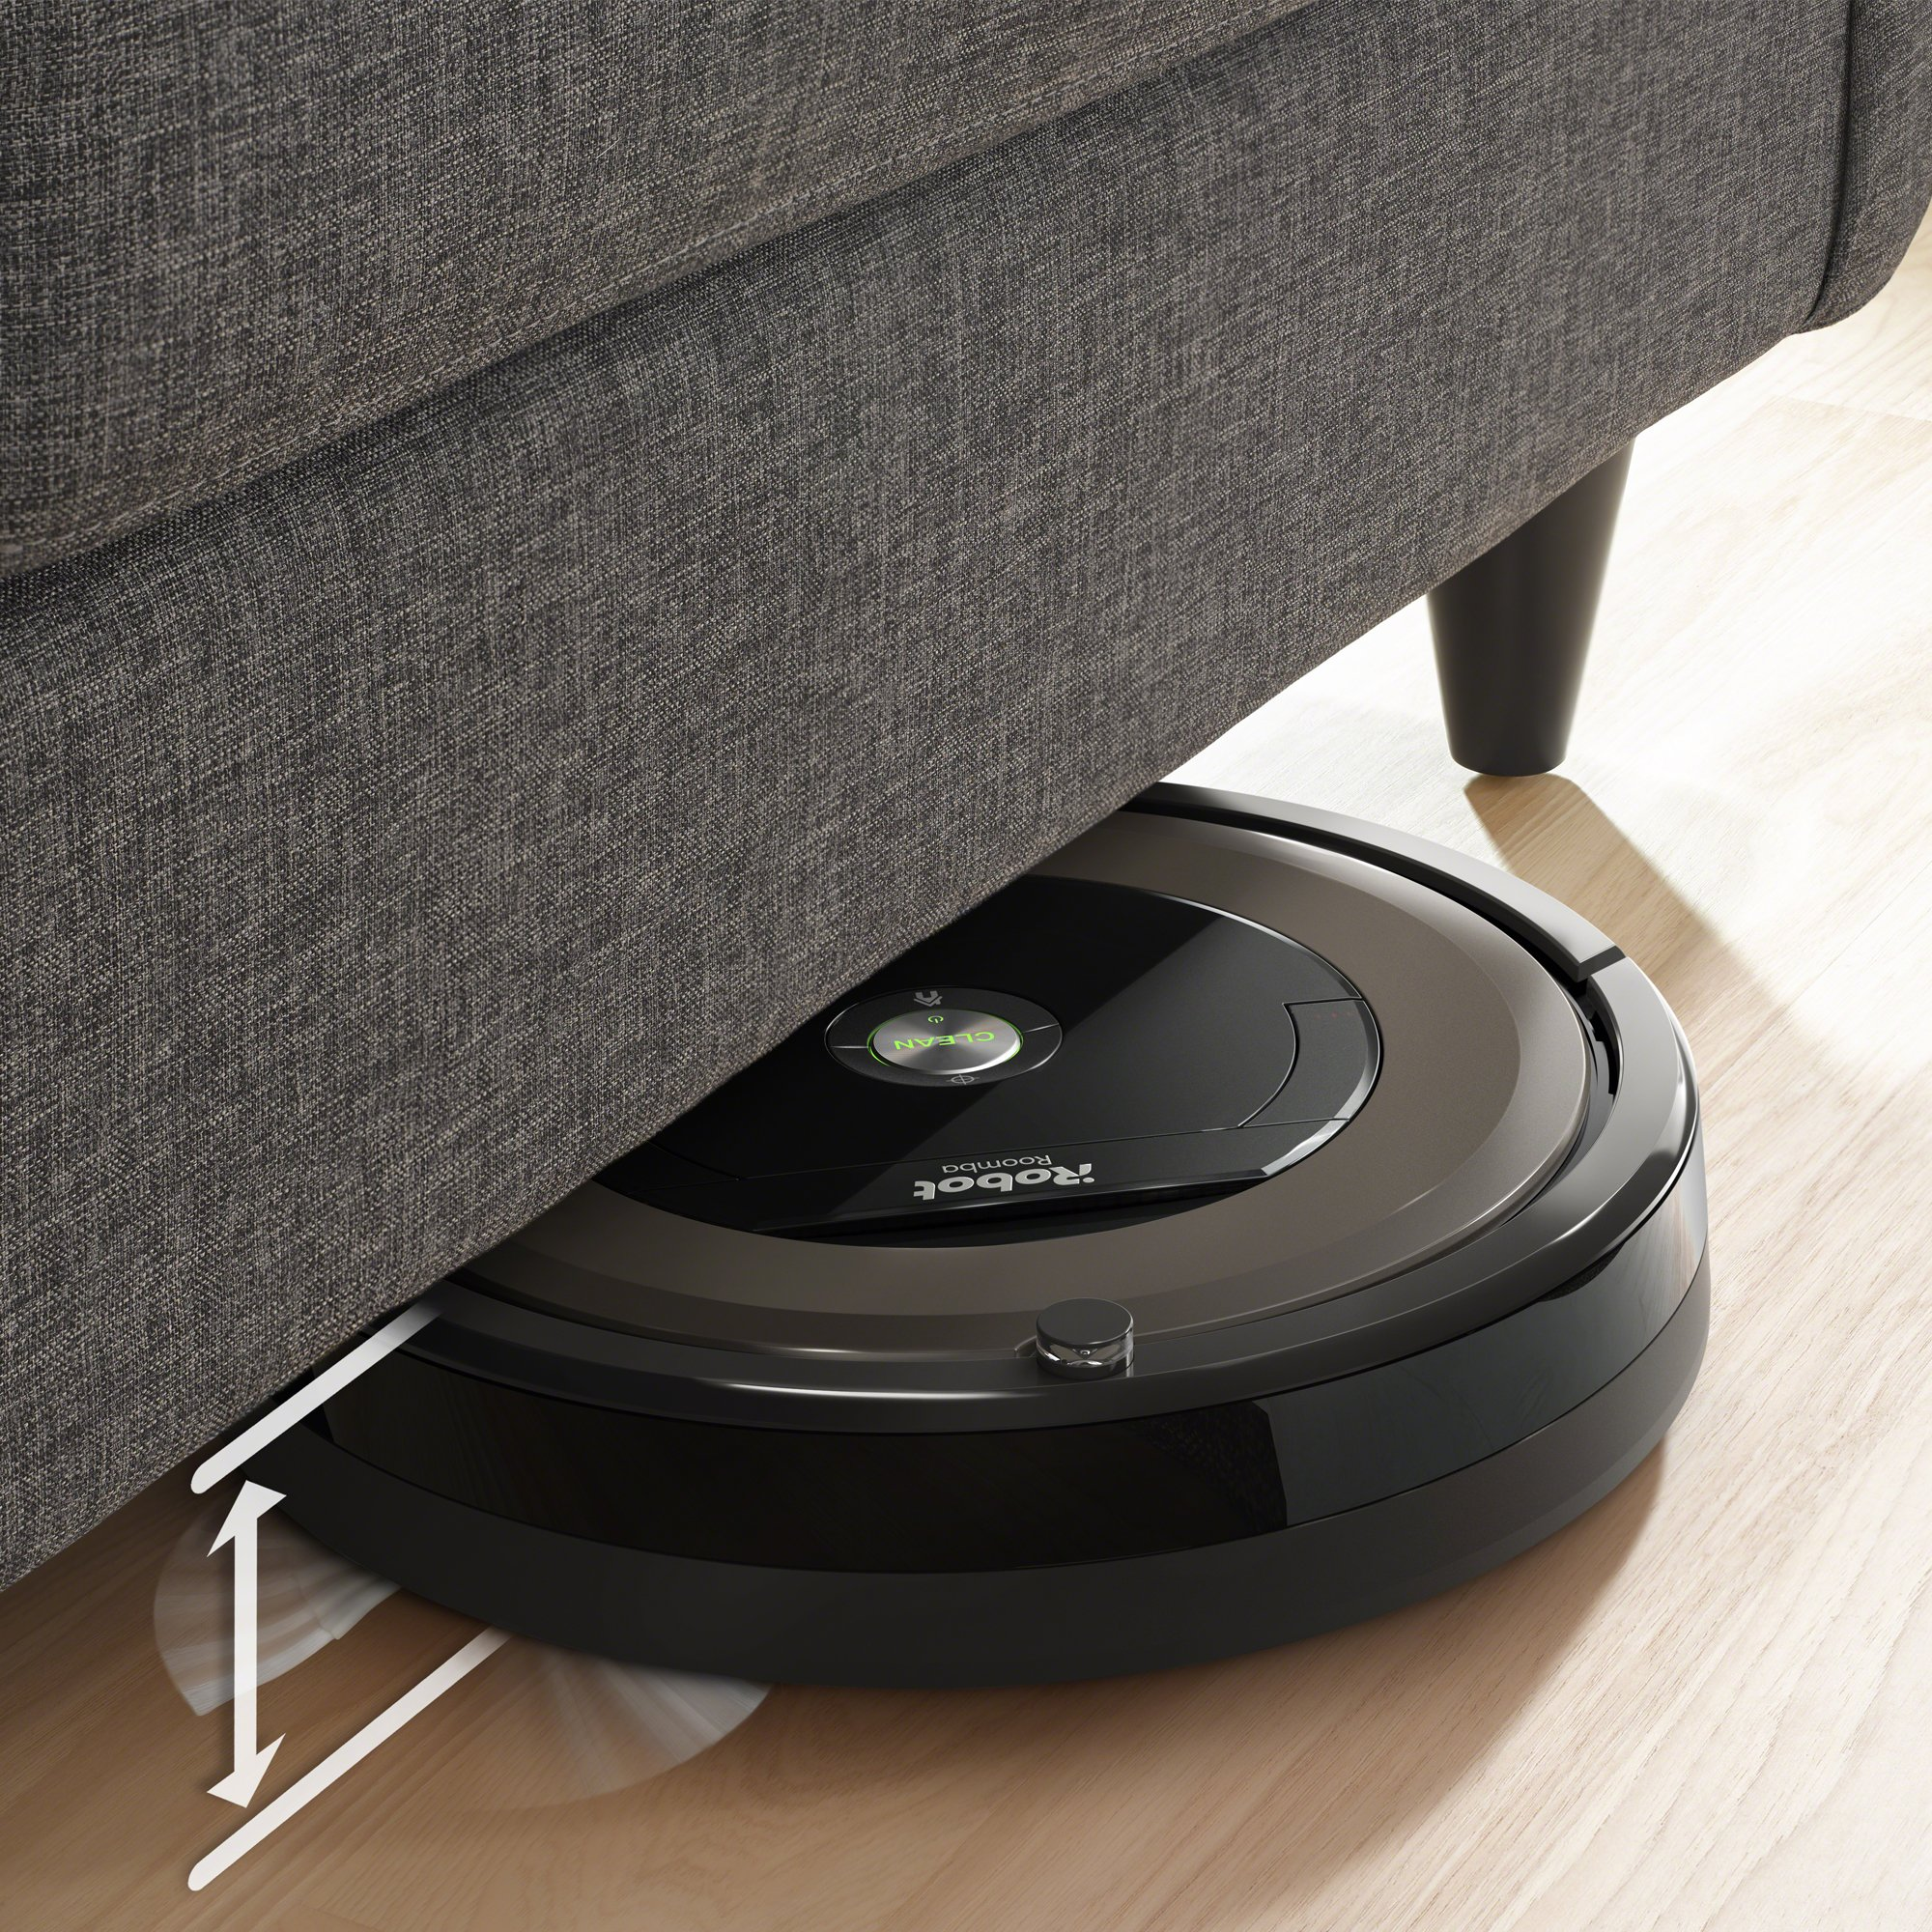 iRobot Roomba 890 Robot Vacuum with Wi-Fi Connectivity by iRobot (Image #3)